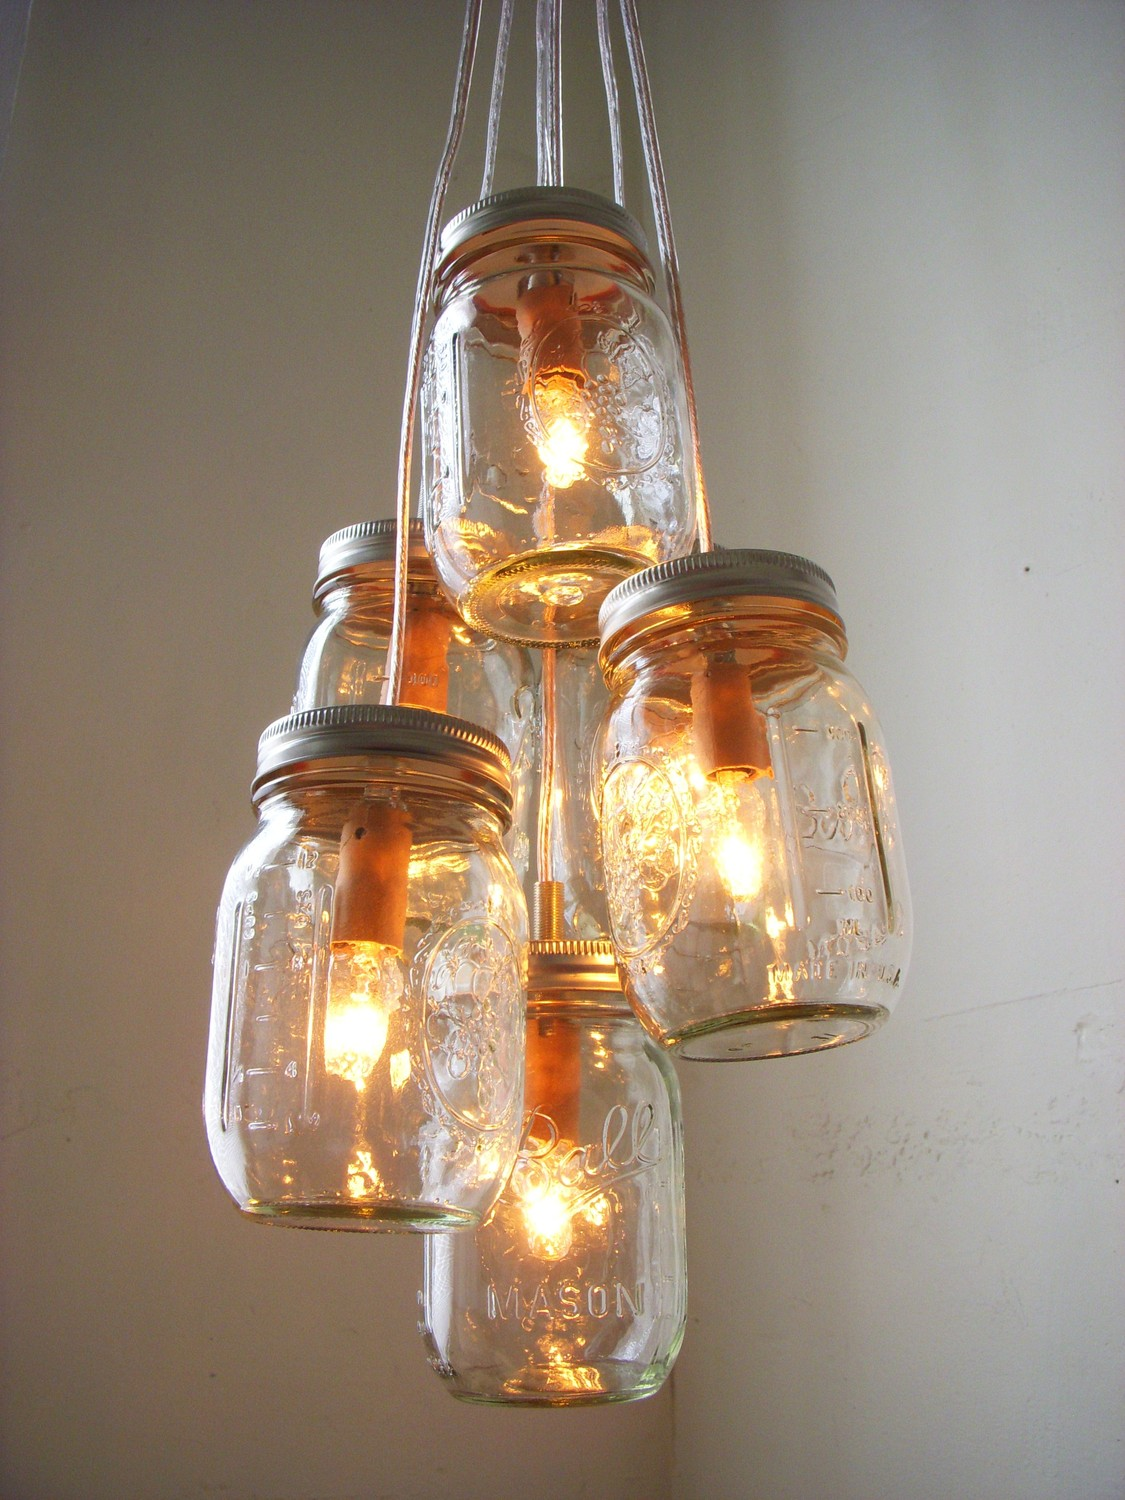 Mason jar lamp diy the easy affordable and dazzling lighting or it can be done as a group activity during a shower or party with each guest taking their very own diy mason jar lamp as a party favor arubaitofo Image collections